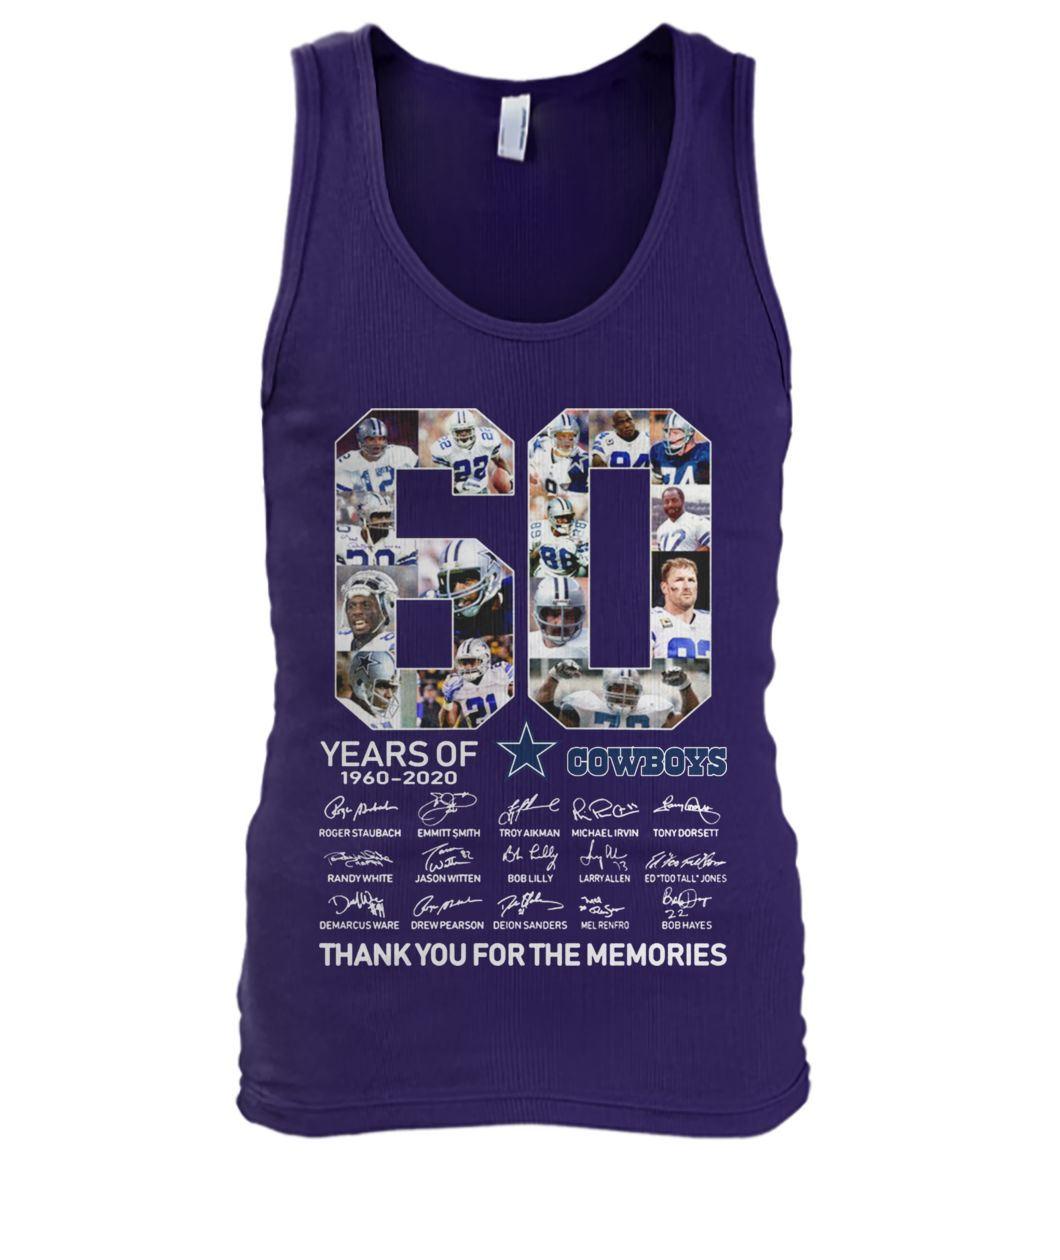 60 years of dallas cowboys thank you for memories signatures men's tank top